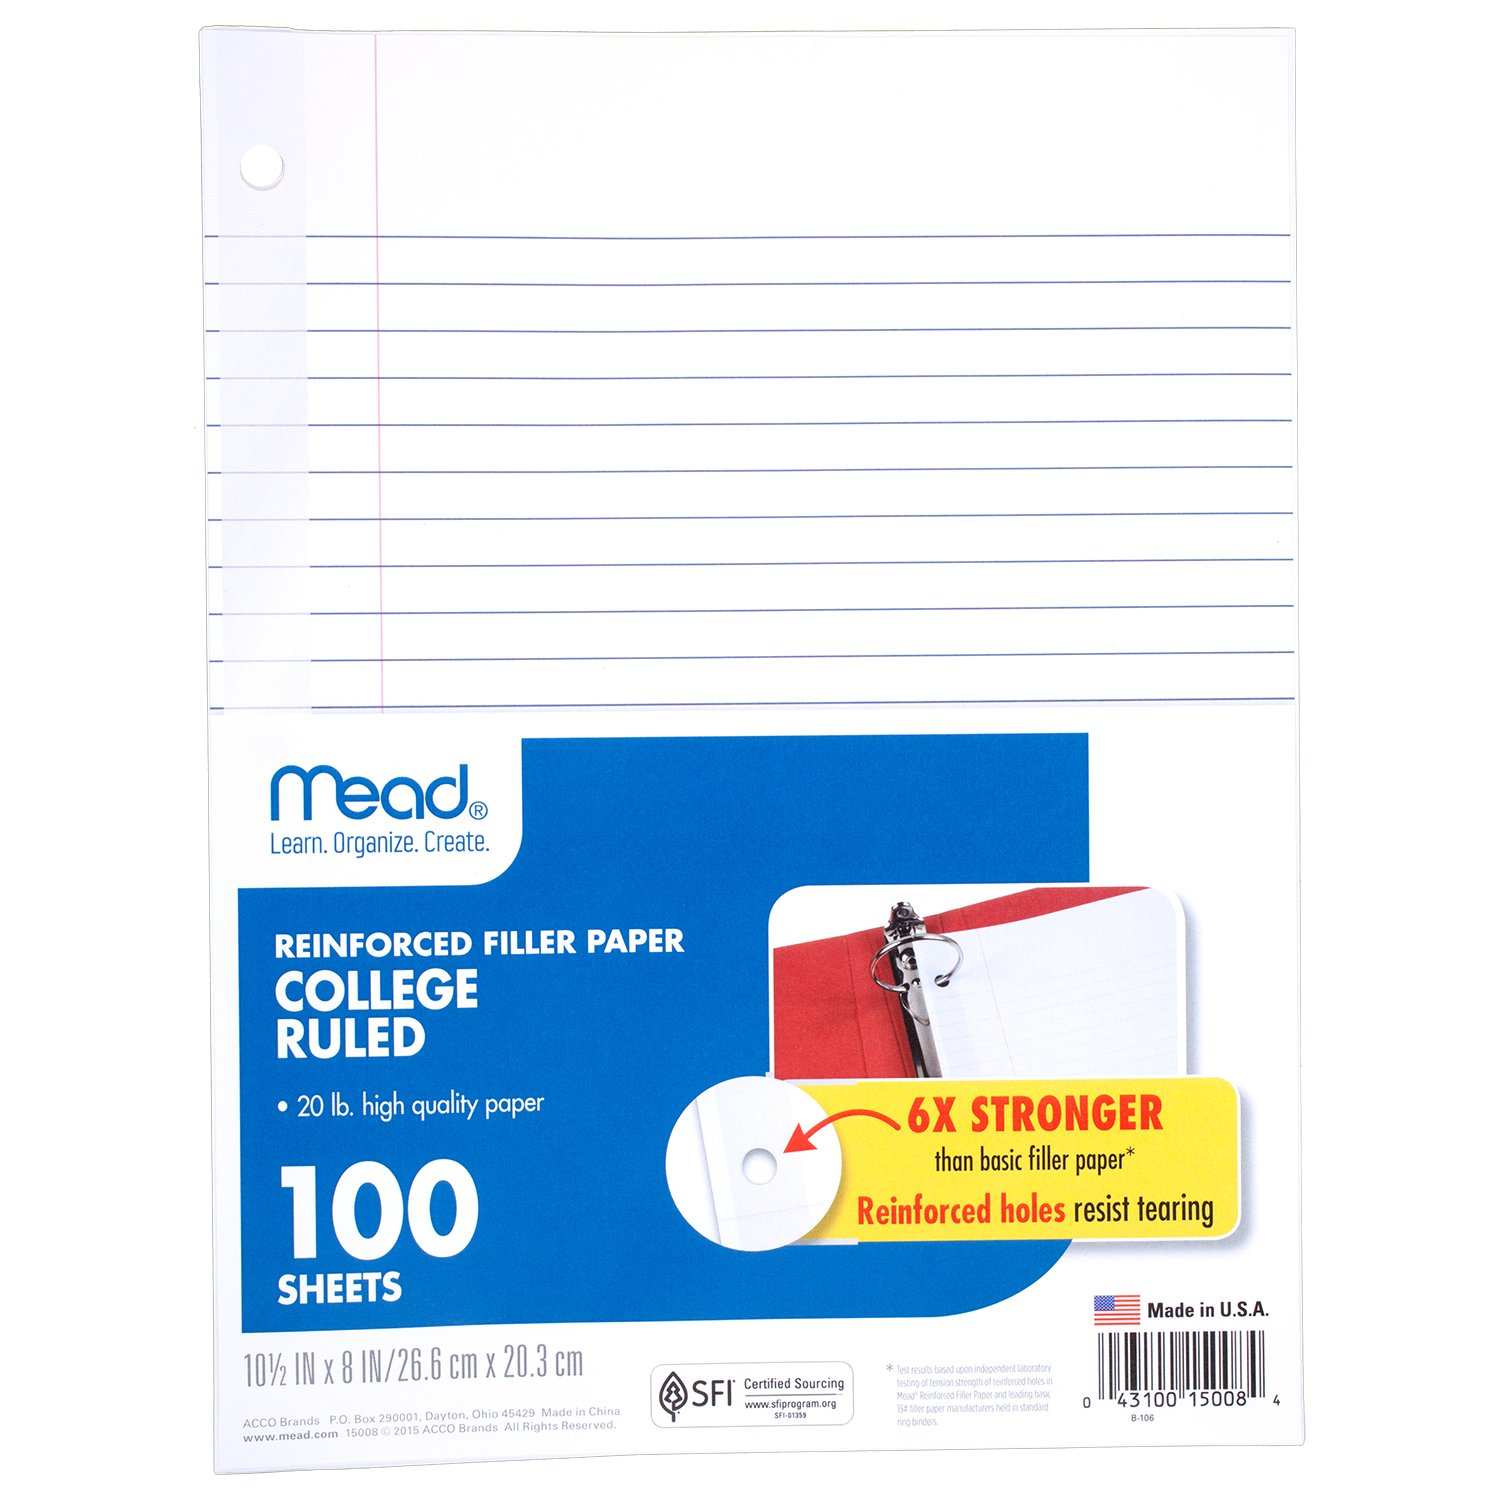 Mead Loose Leaf Paper, Filler Paper, Reinforced, College Ruled, 100 Sheets, 10-1/2'' x 8'', 3 Hole Punched, 3 Pack (38037) by Mead (Image #2)